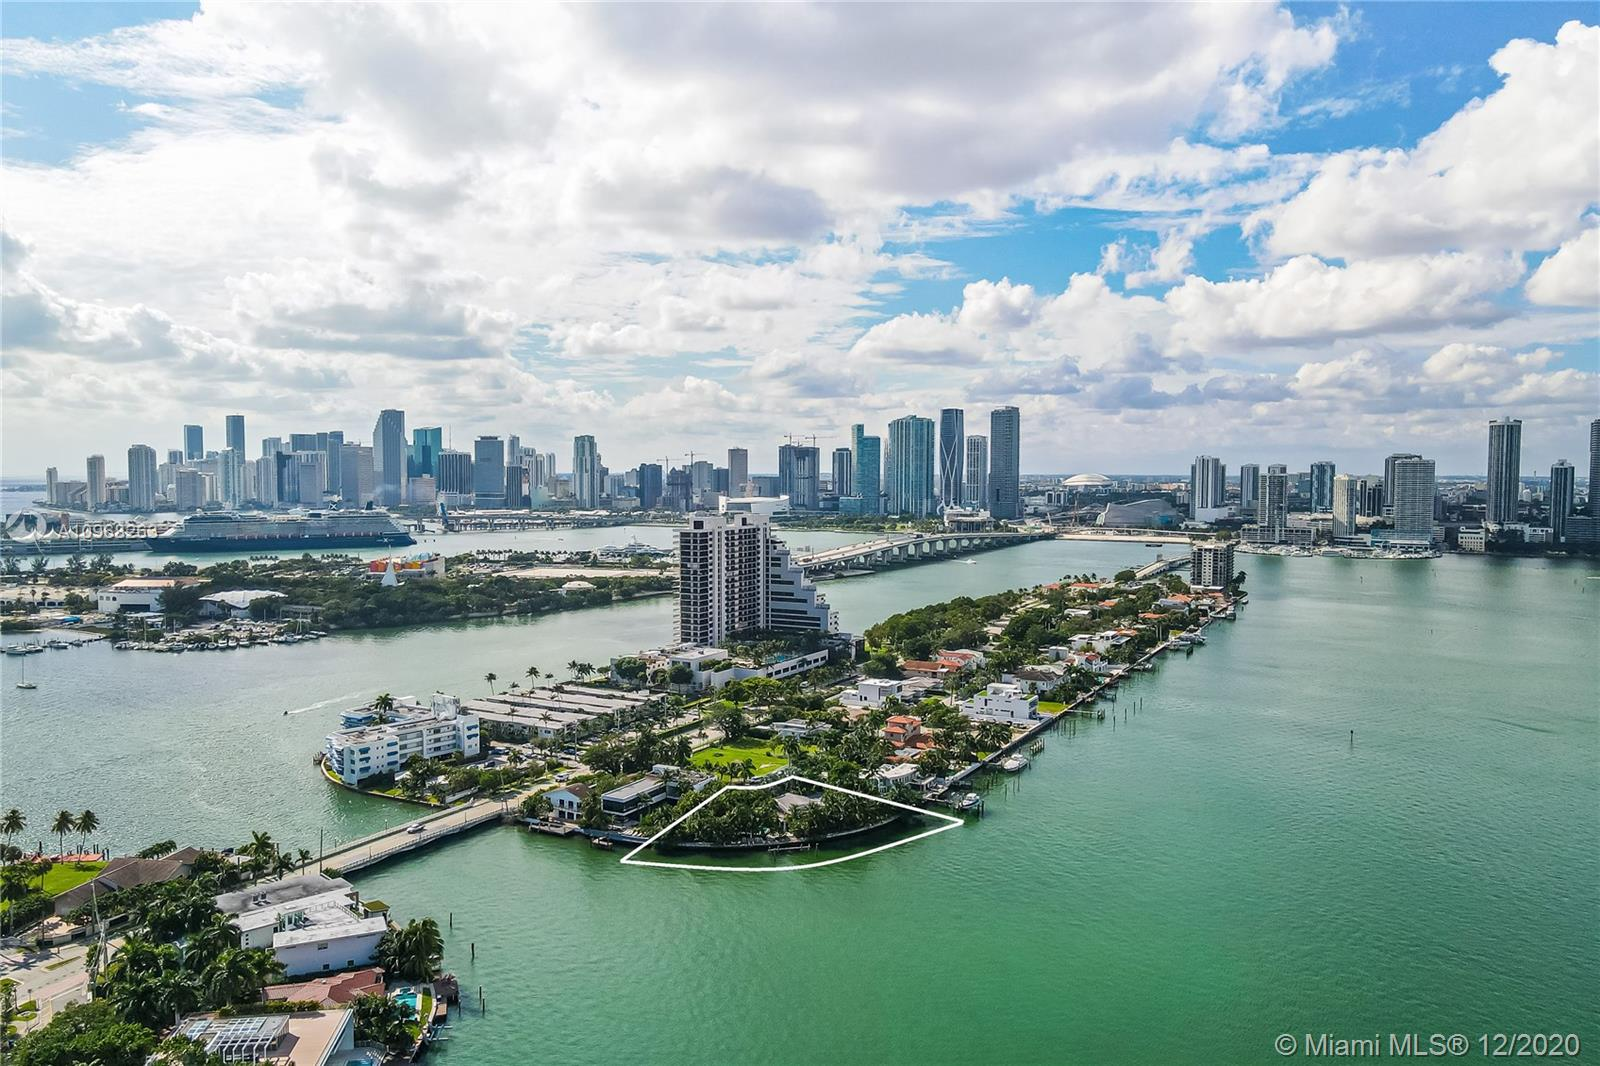 First time on the market in 20 years, this unassuming Oversized Double Plus Lot sits nestled at the end of a quiet street on the Venetian Islands. Once you enter this 24,000 sq ft Pie Shaped Property, you're in complete privacy, surrounded by a Mature Garden with a variety of beautiful trees and groundcover which then opens into endless views over Biscayne Bay. Over 250 feet of seawall gives you unobstructed views to South Beach and North Miami. The unique location of this land provides a completely private sanctuary in the middle of Miami Beach and just minutes from Downtown Miami, Wynwood and Brickell... Back at home you can escape all of the hustle and bustle of the City and feel like you are living in a secluded Caribbean Paradise